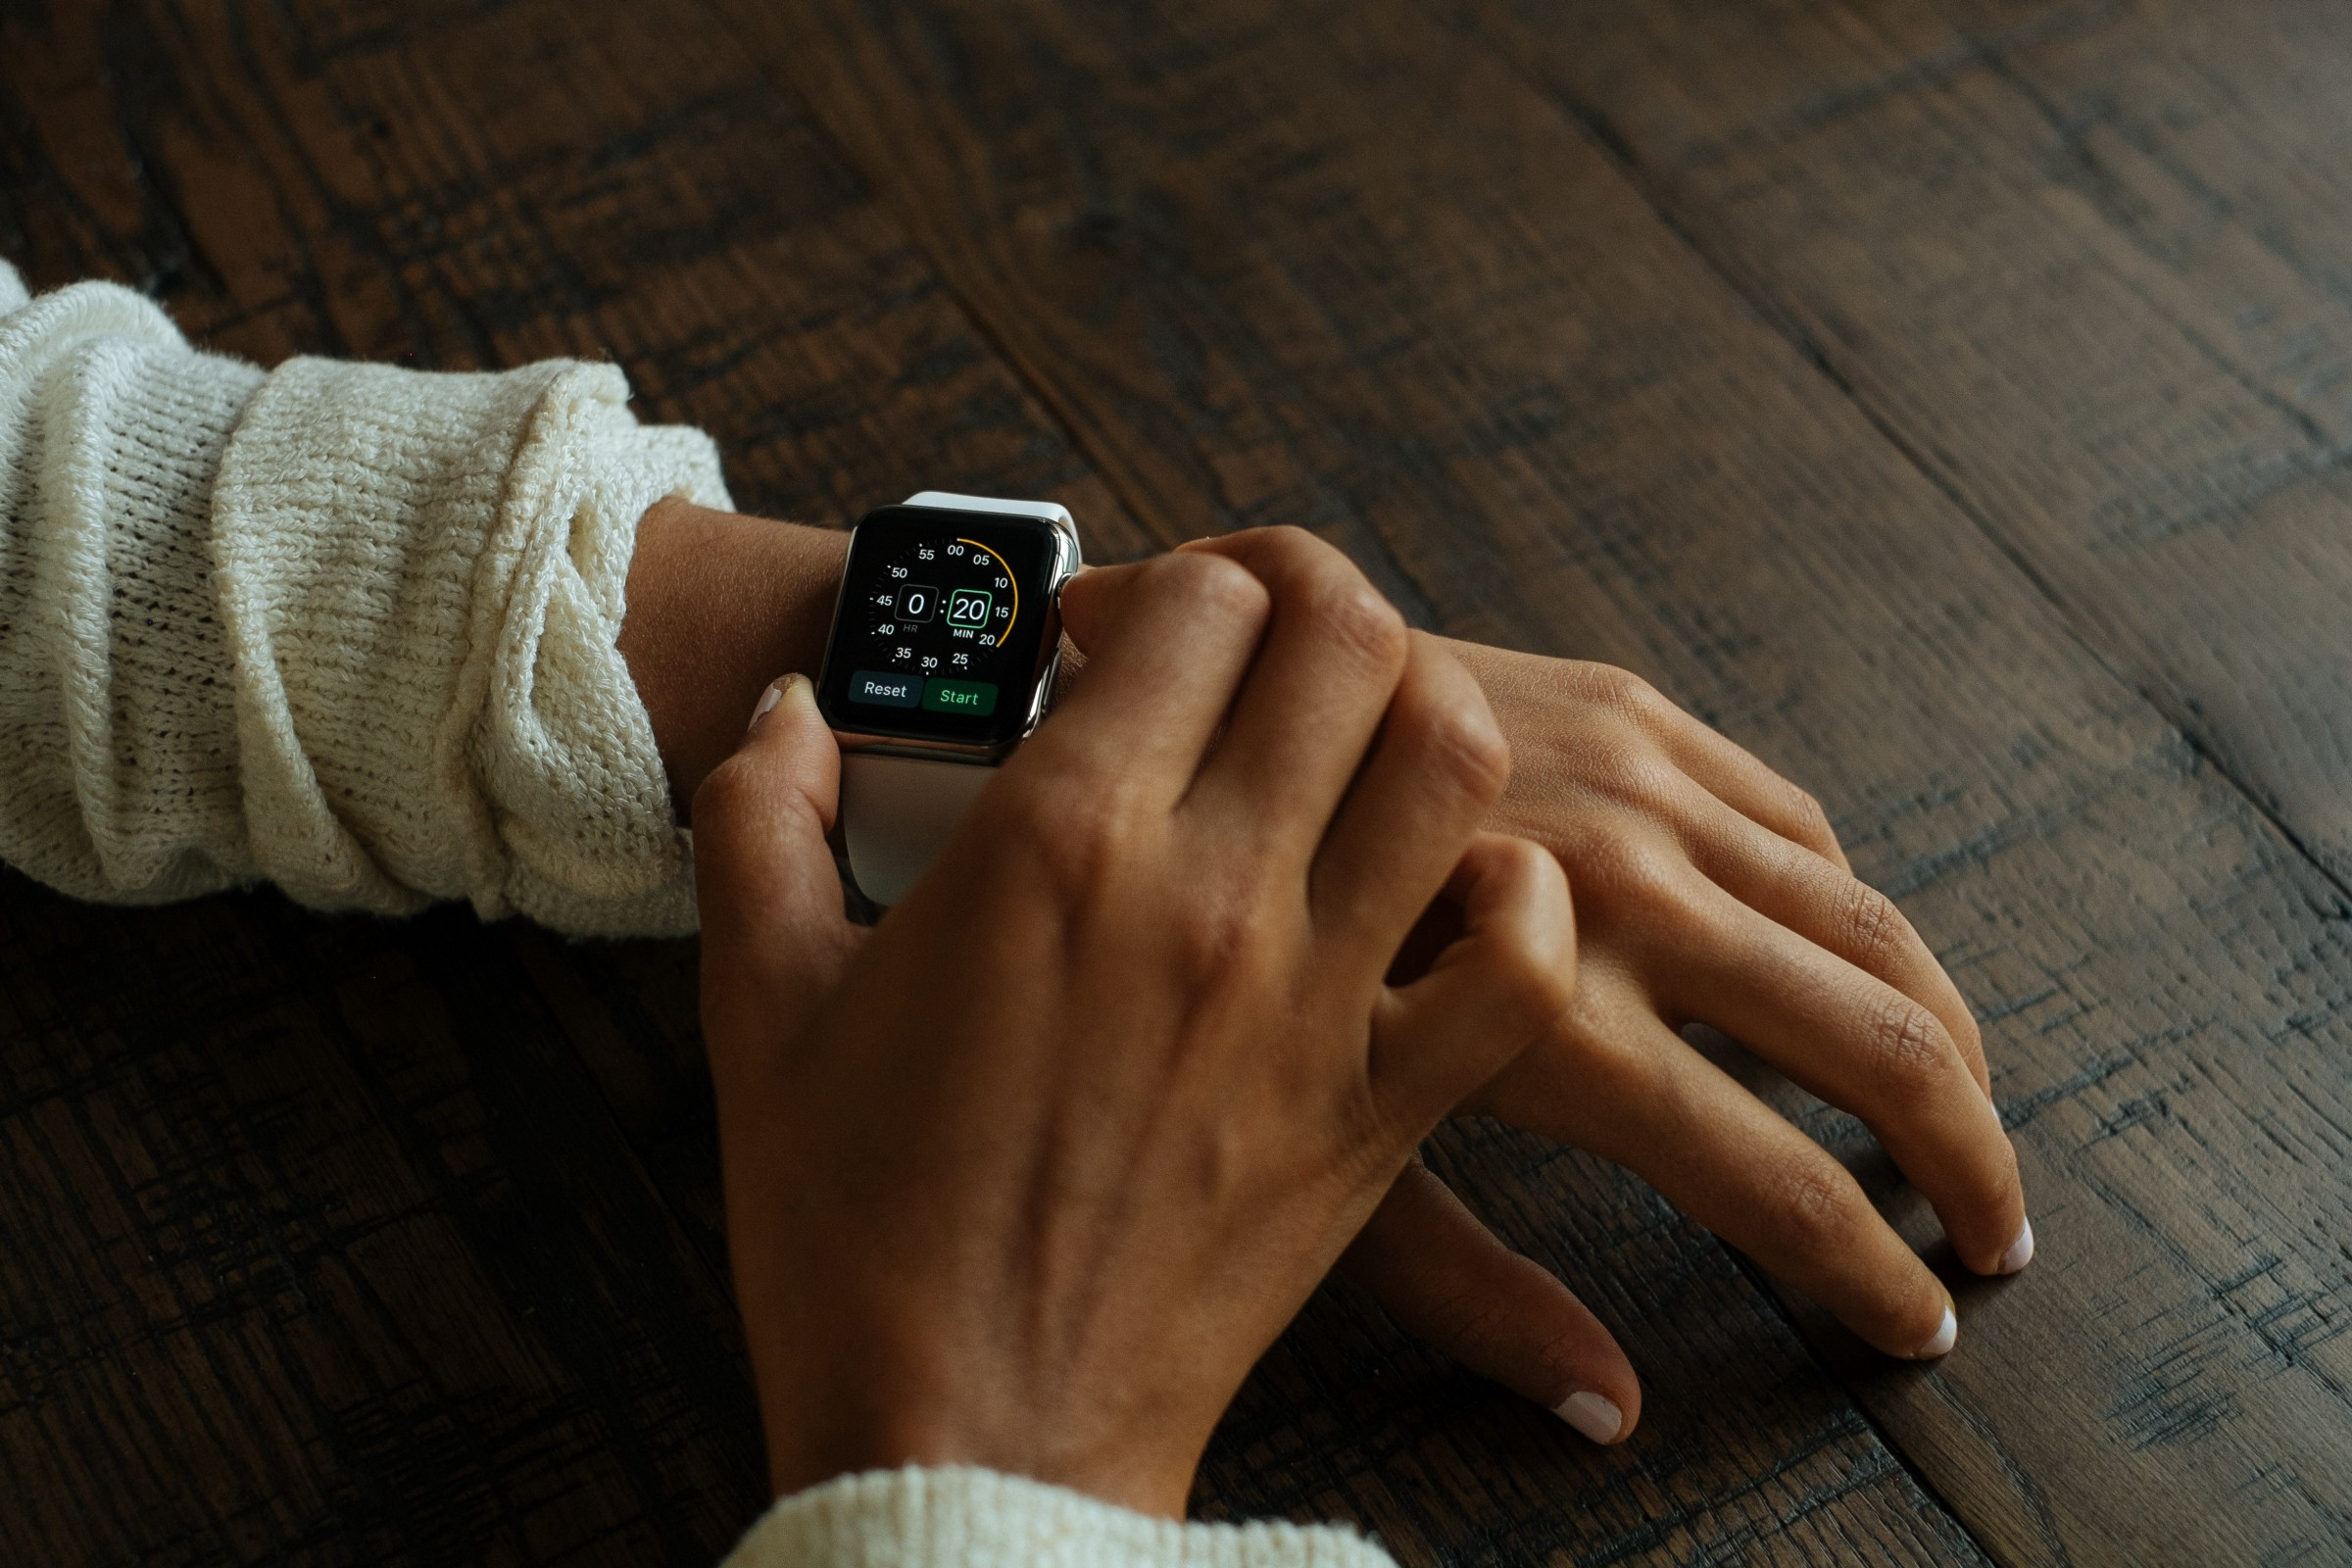 /privacy-security-concerns-grow-for-wearables-677b70afa6e0 feature image